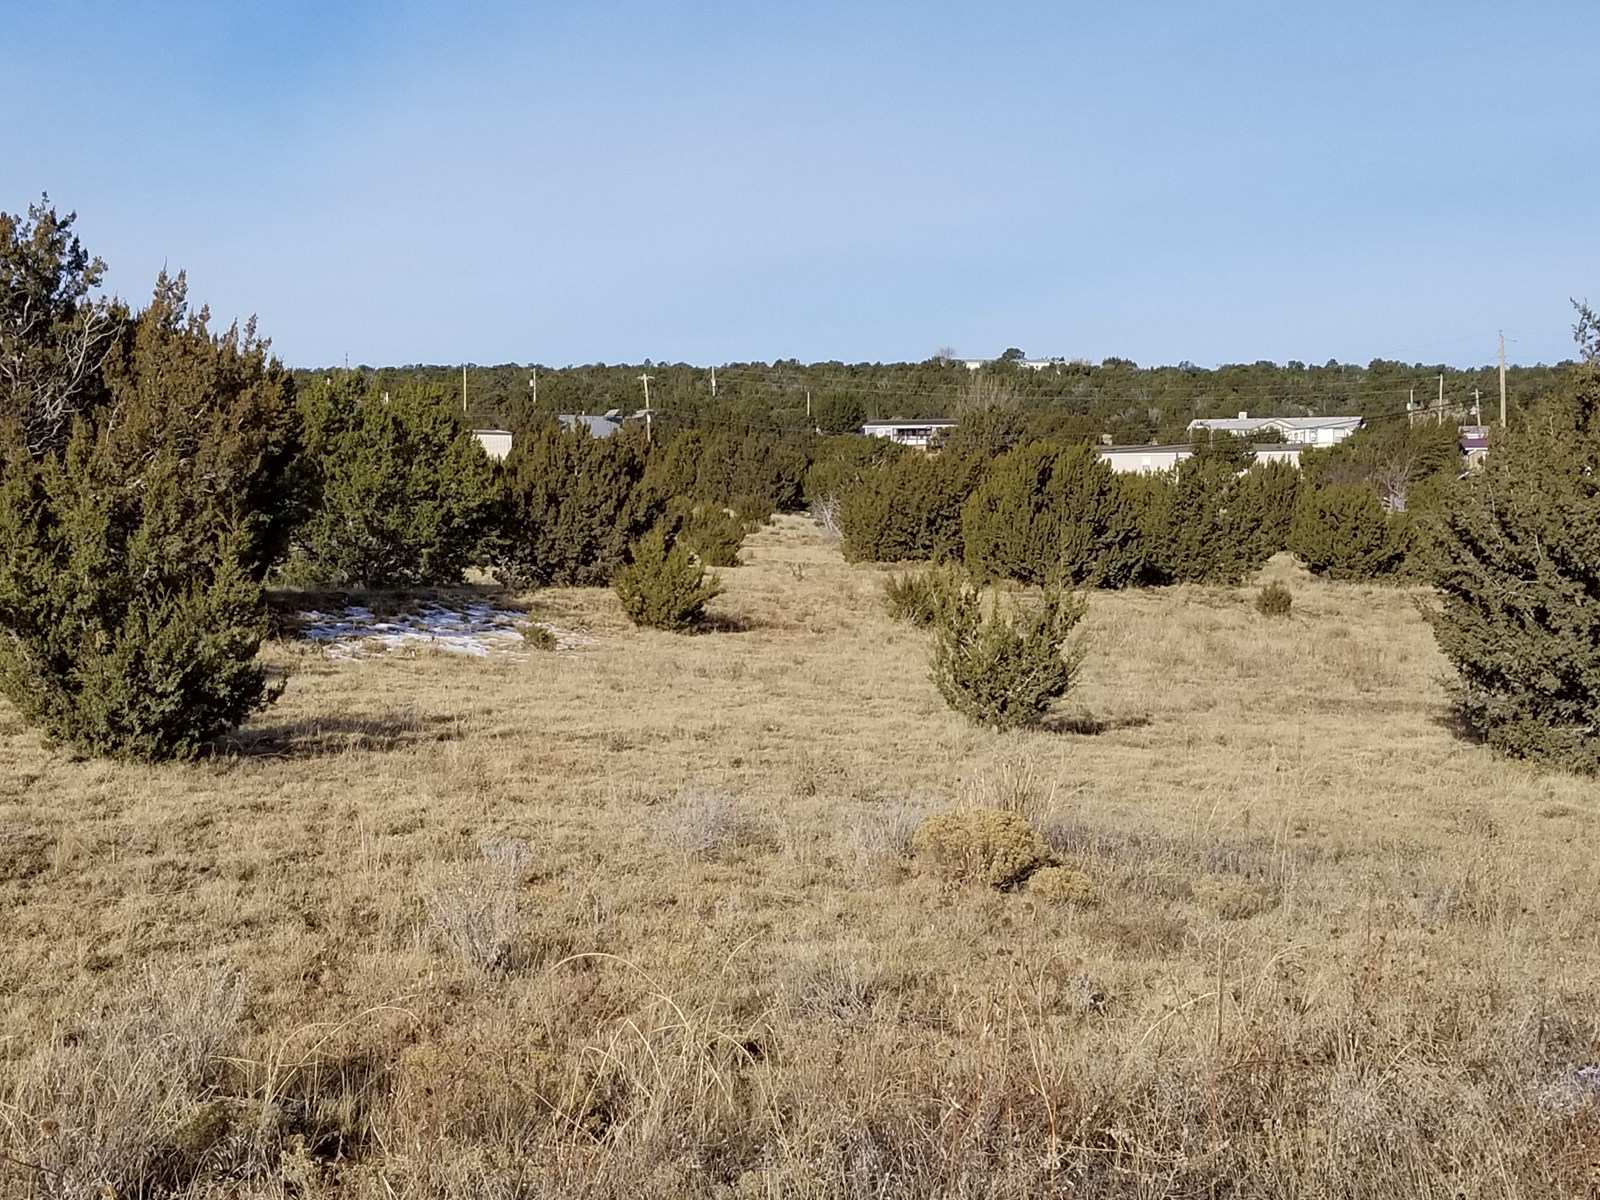 For Sale Residential 2.5 acre lot in Edgewood NM.